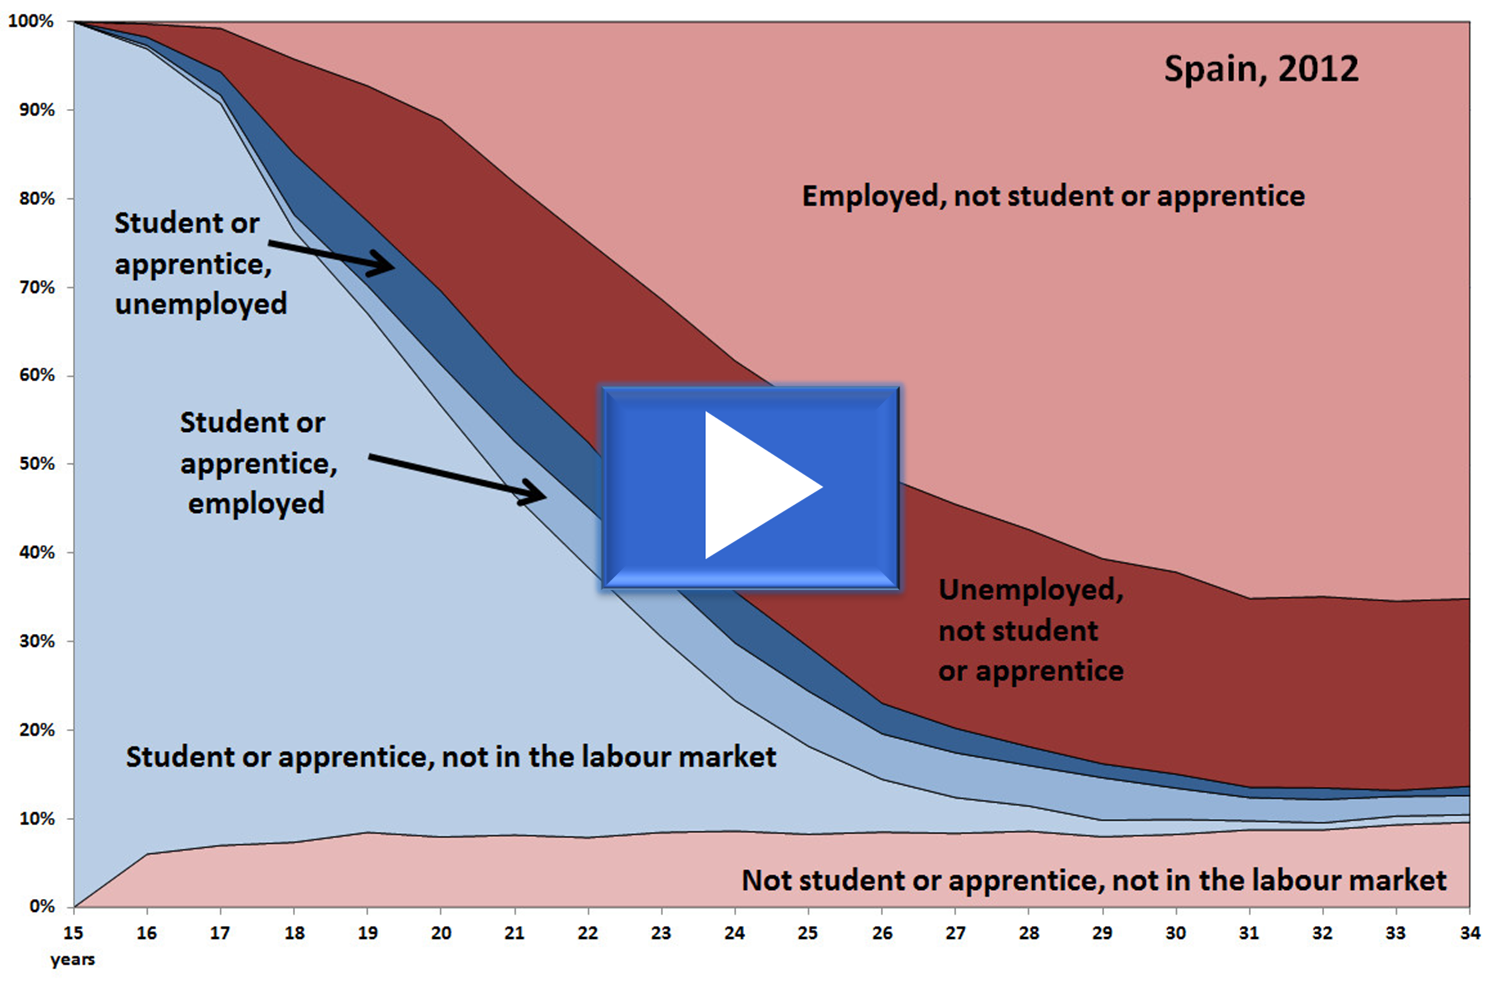 Employment education ES,2012.png